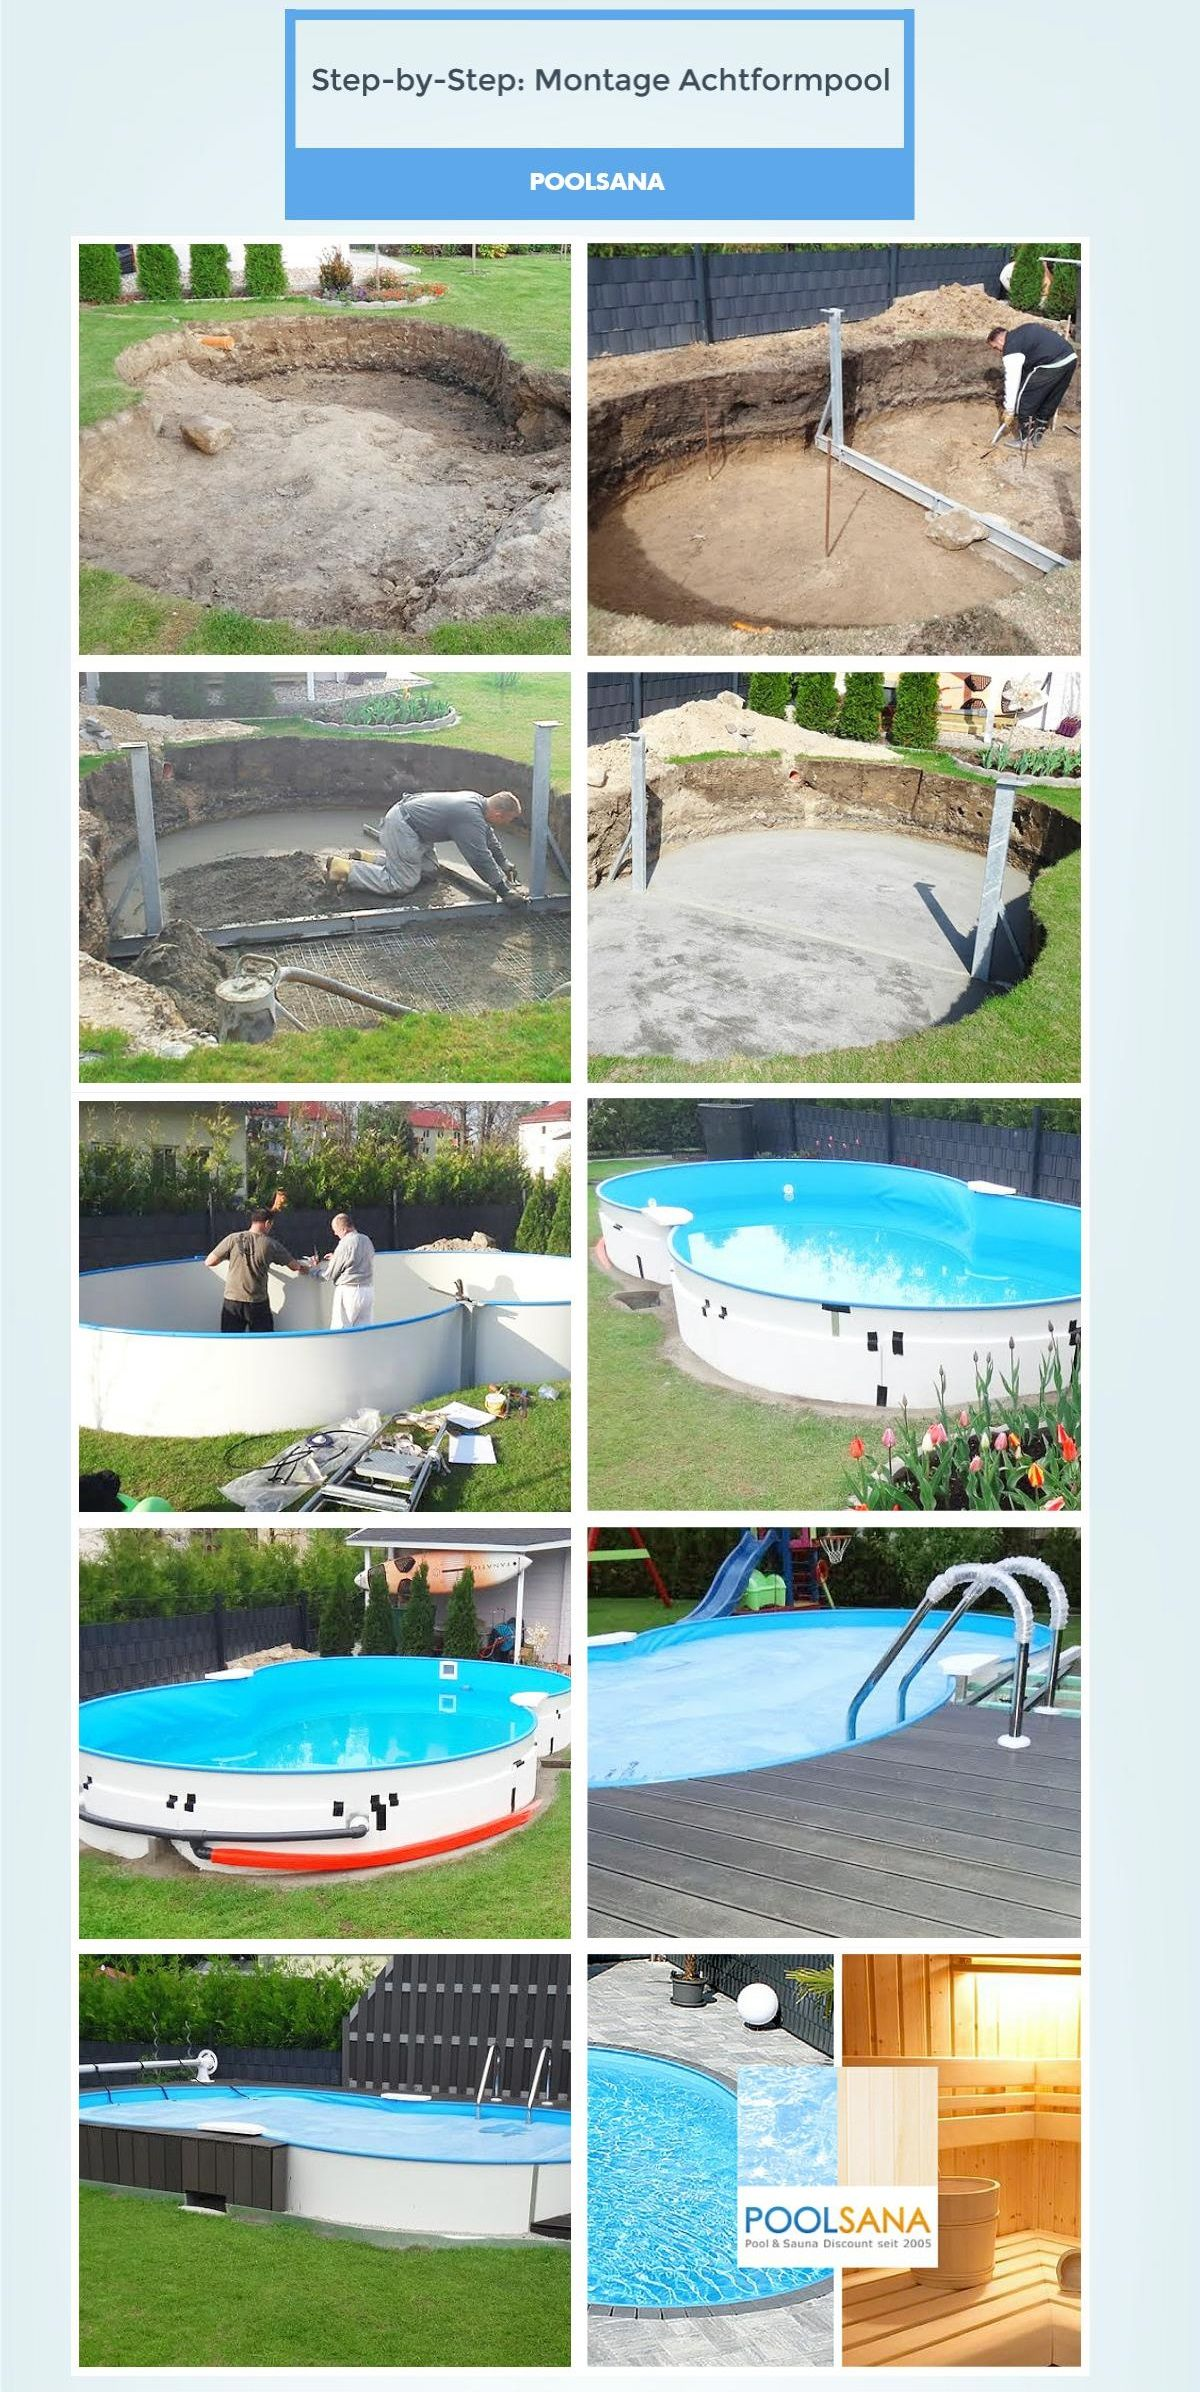 pool diy achtformpool step by step so einfach ist die montage eines diy garten. Black Bedroom Furniture Sets. Home Design Ideas